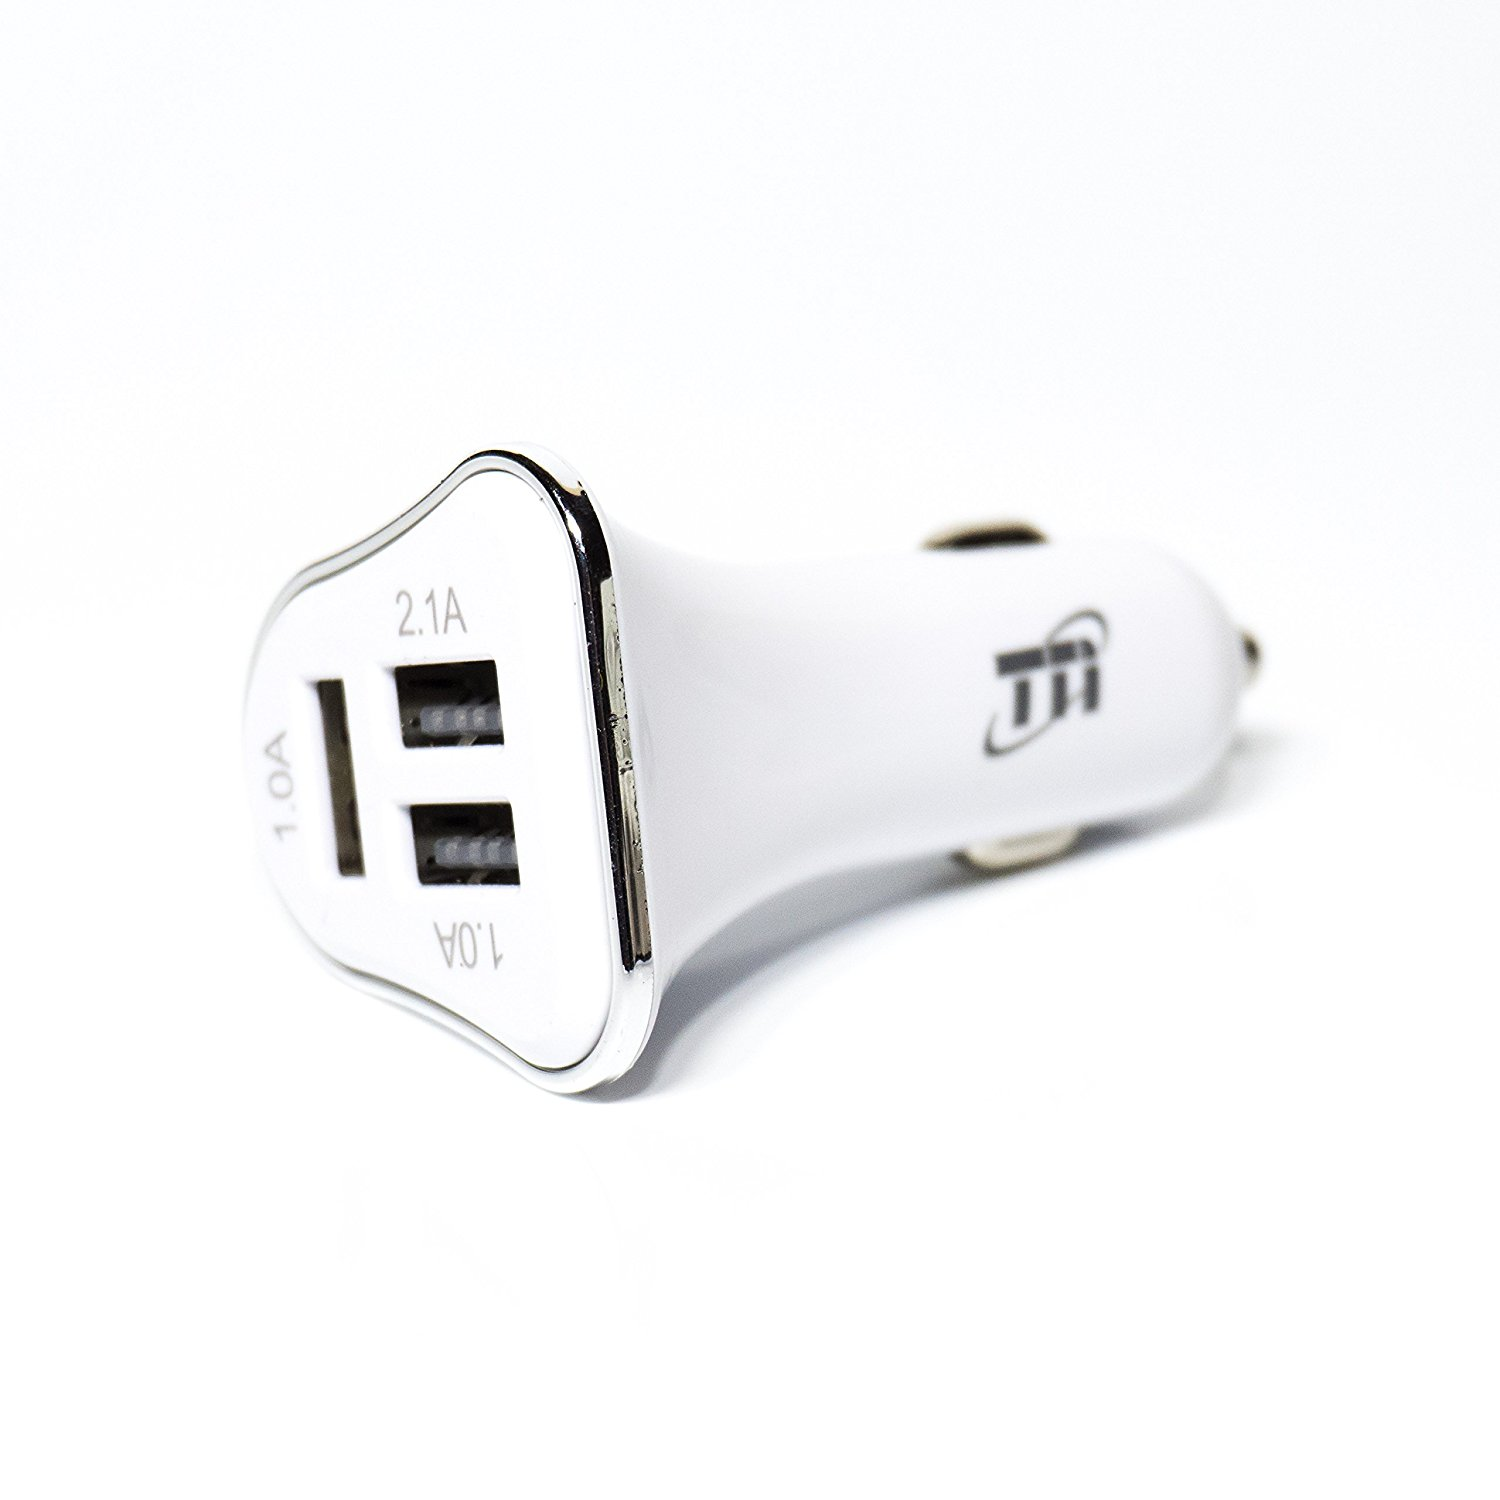 USB Car Charger, TNI New 3 USB Port Car Charger, One Smart Port 2.1A USB Fast Charge Port, and Two Universal 1.0A USB Port for iPads, iPhone 5,6,7, Samsung Galaxy S7, S7 Edge, Note (White)